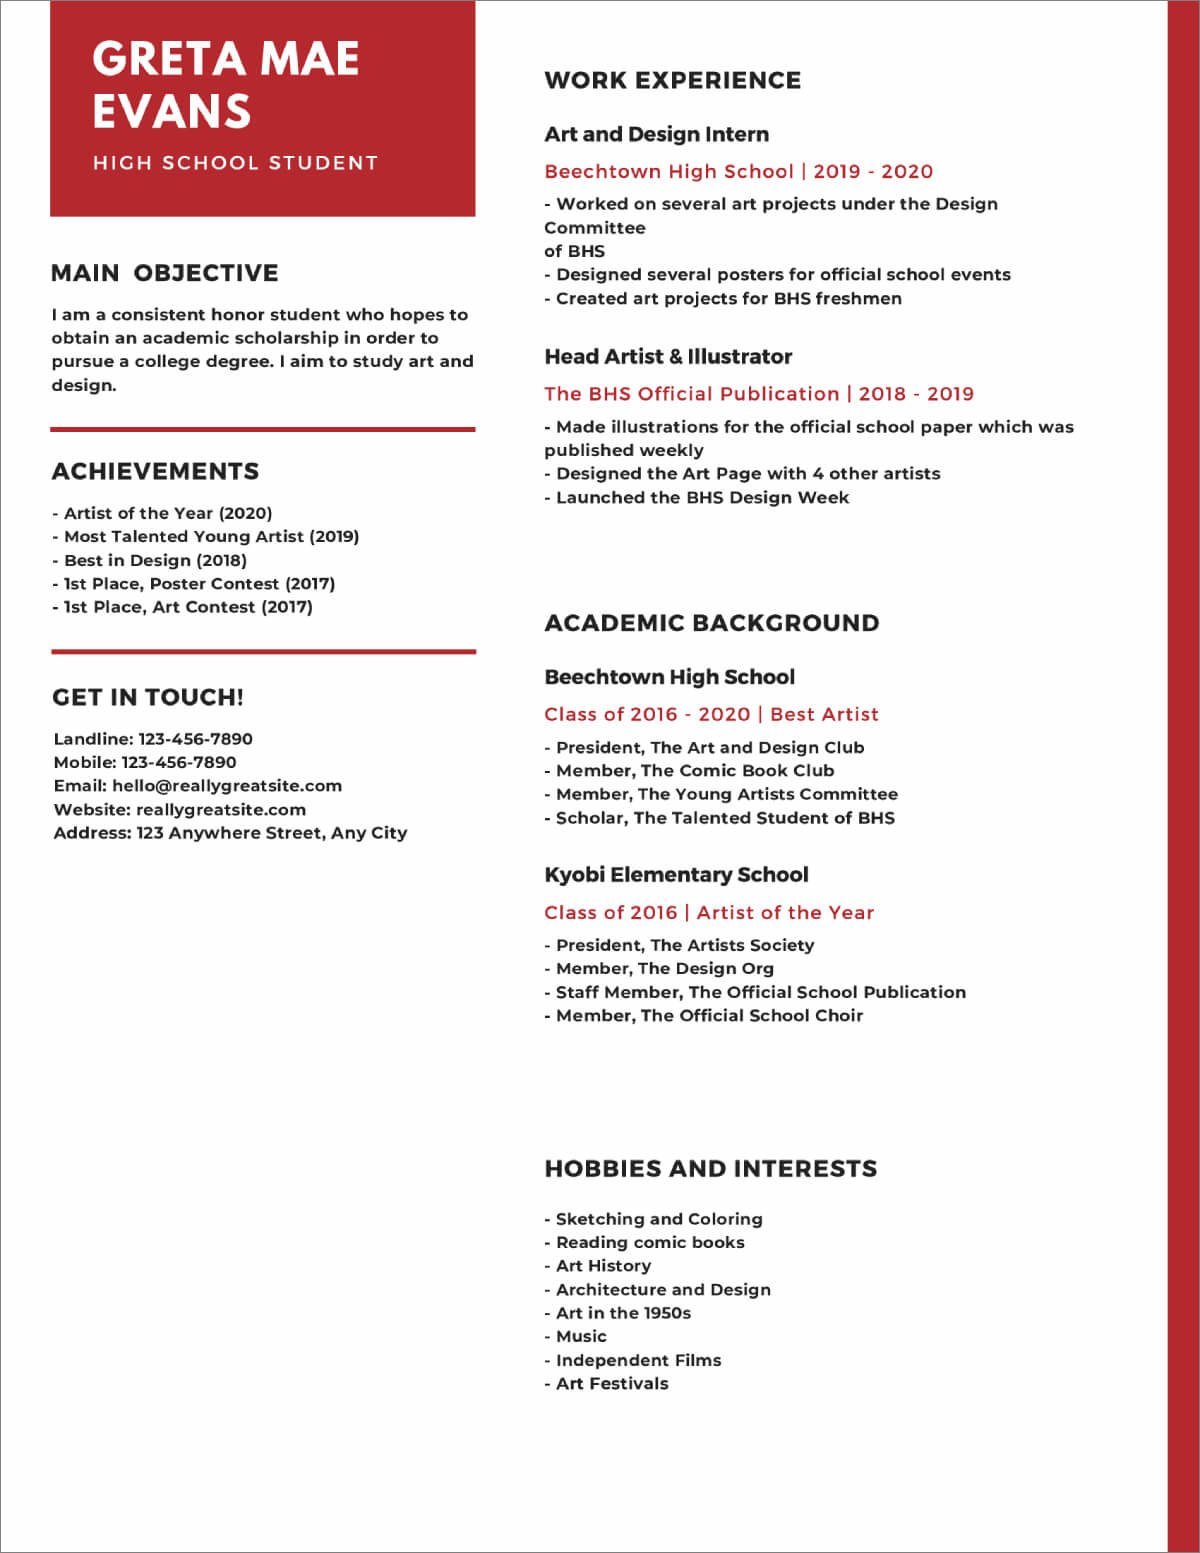 high school resume templates now best for students expert writers virtual collections Resume Best Resume Templates For Students